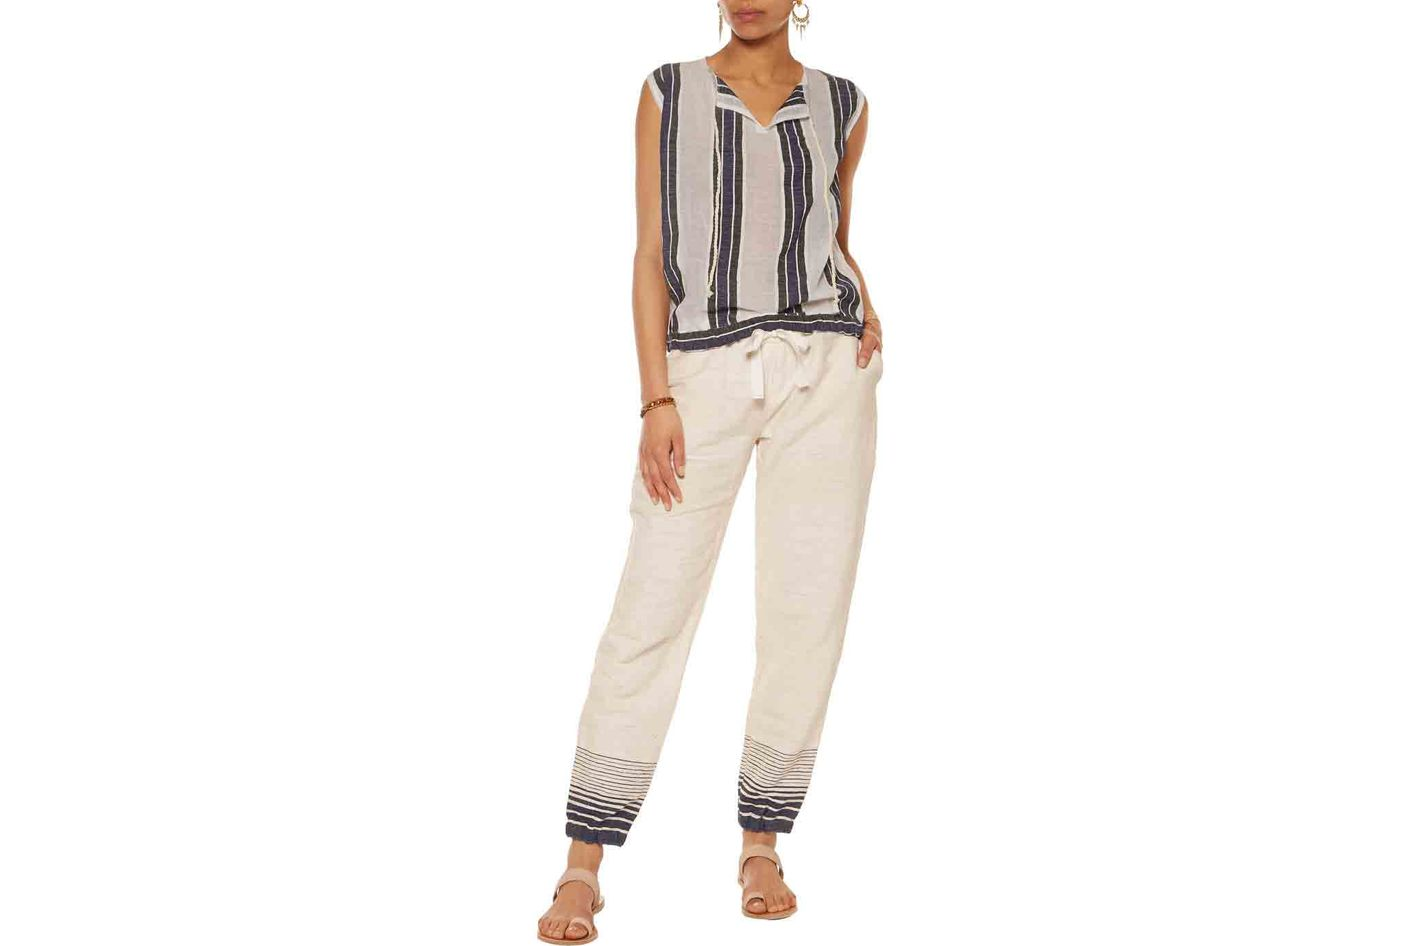 Lemelm Biftu Slub Cotton-Blend Track Pants